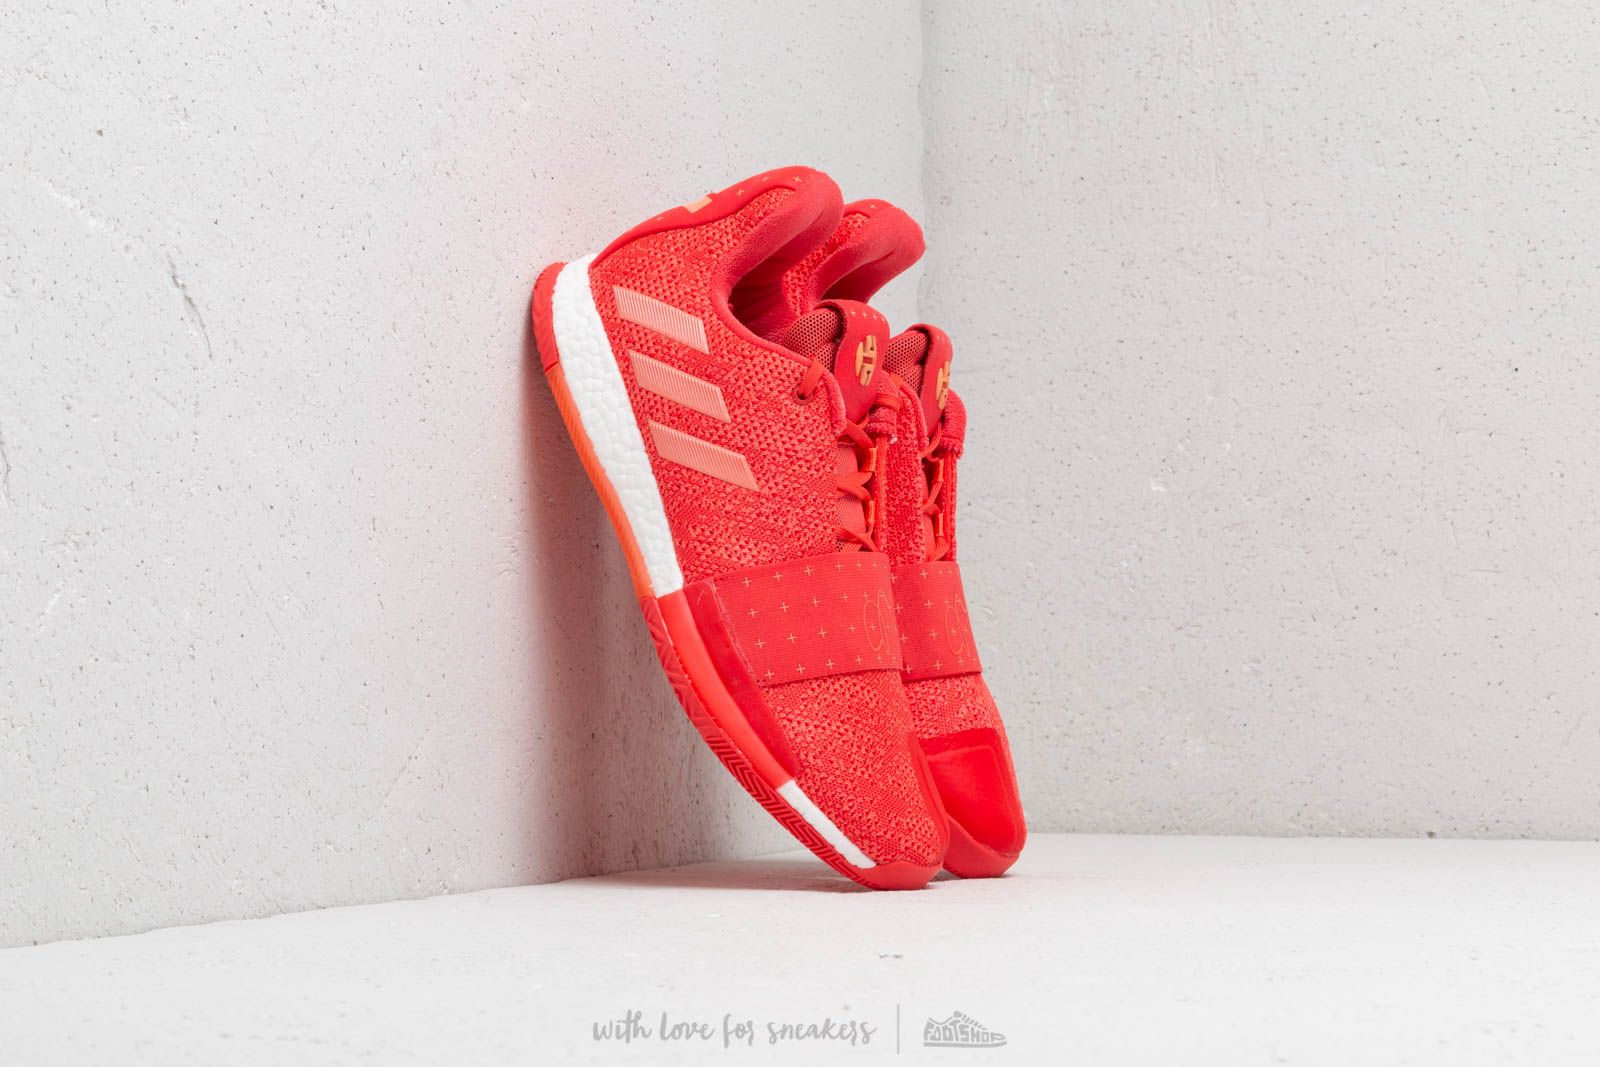 b38a27dbacbe adidas Harden Vol. 3 Chalk Coral  Chalk Coral  Chalk Coral at a great